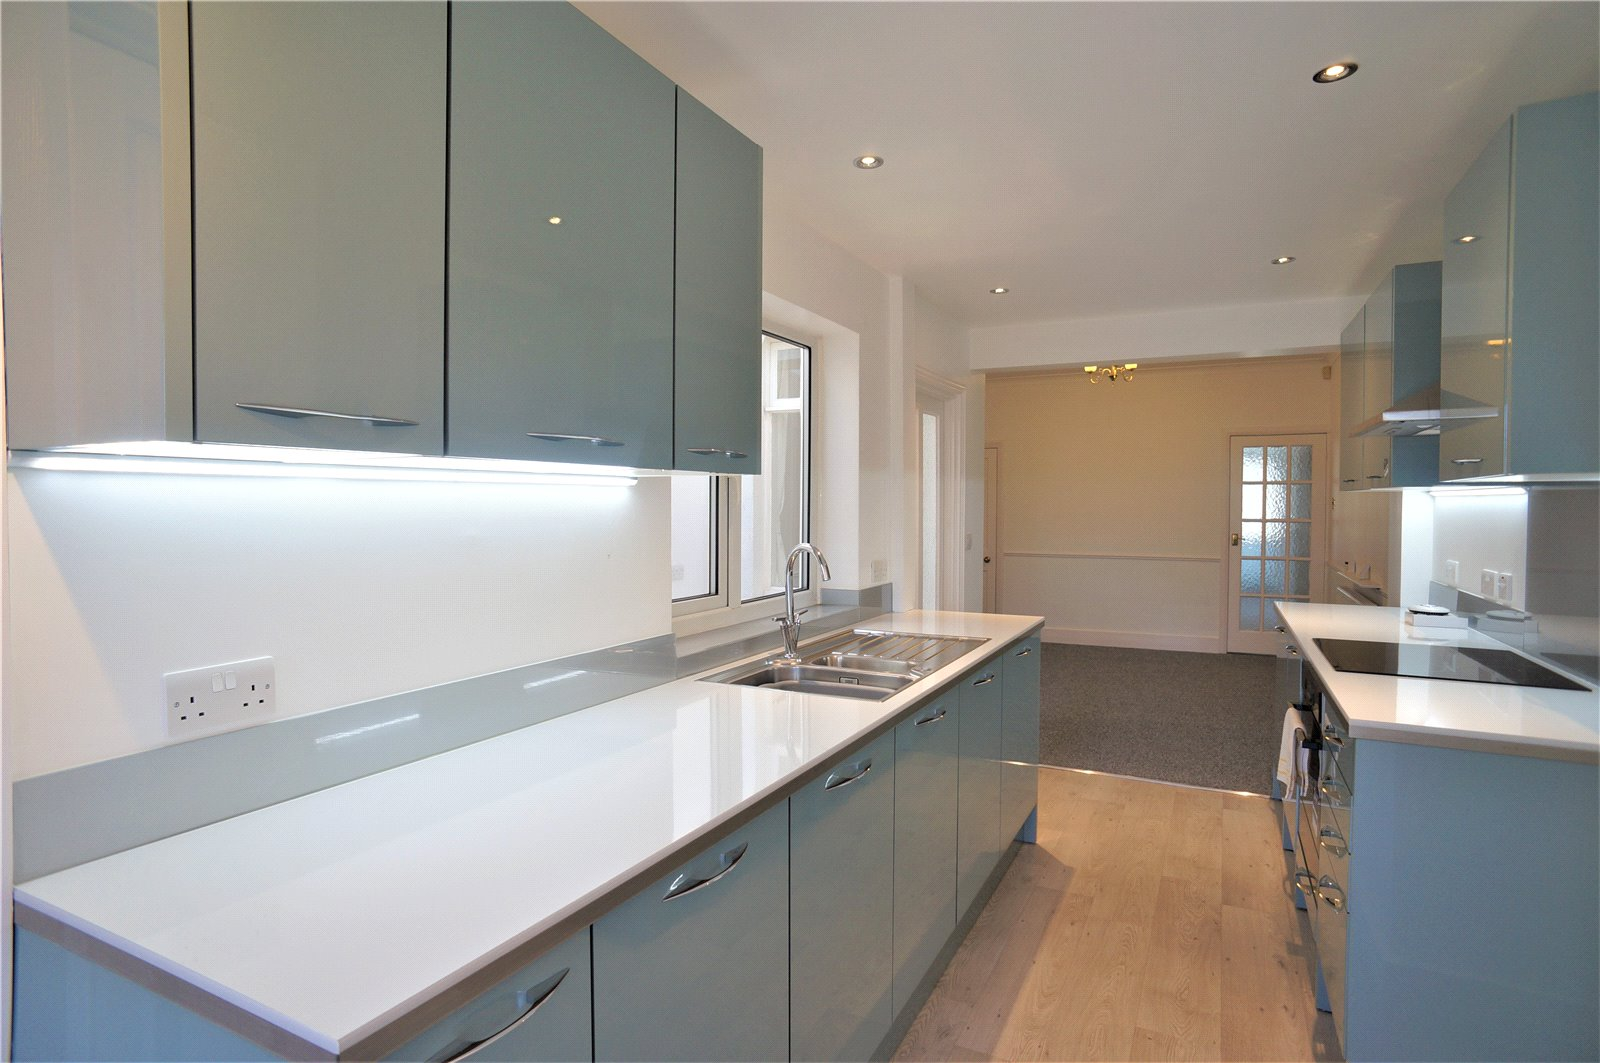 2 Bedrooms Terraced House for sale in Church Street, Cliffe, Rochester, Kent, ME3